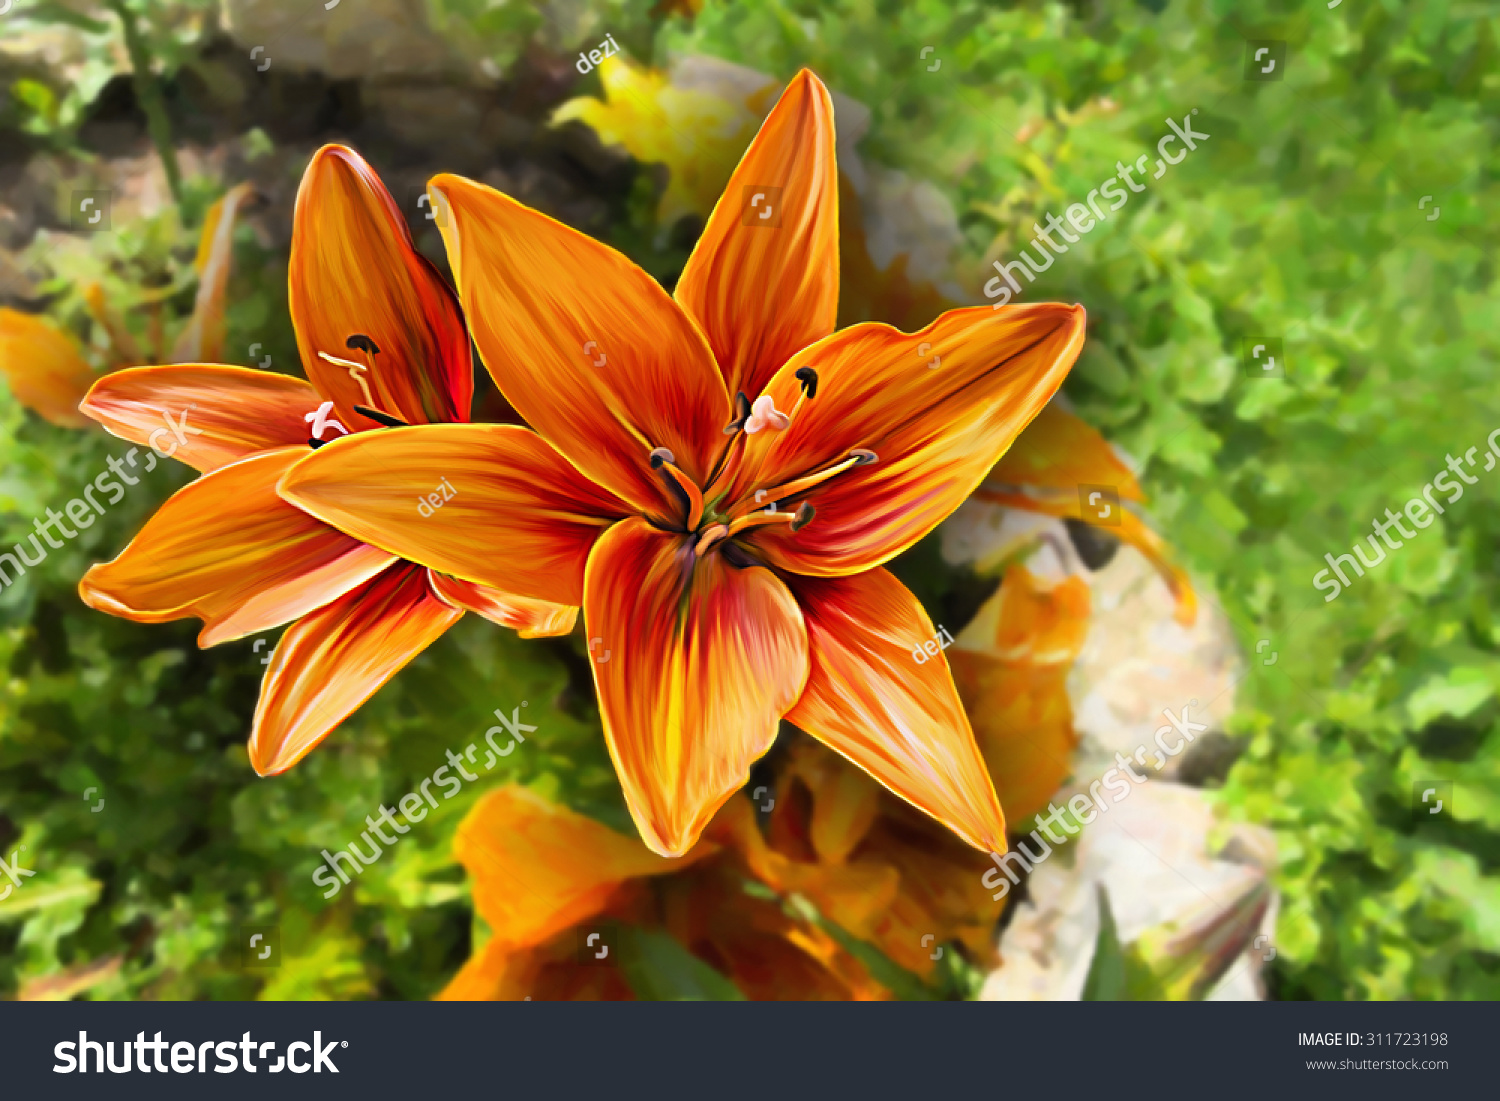 Drawing Lily Flower Oil Painting On Stock Illustration 311723198